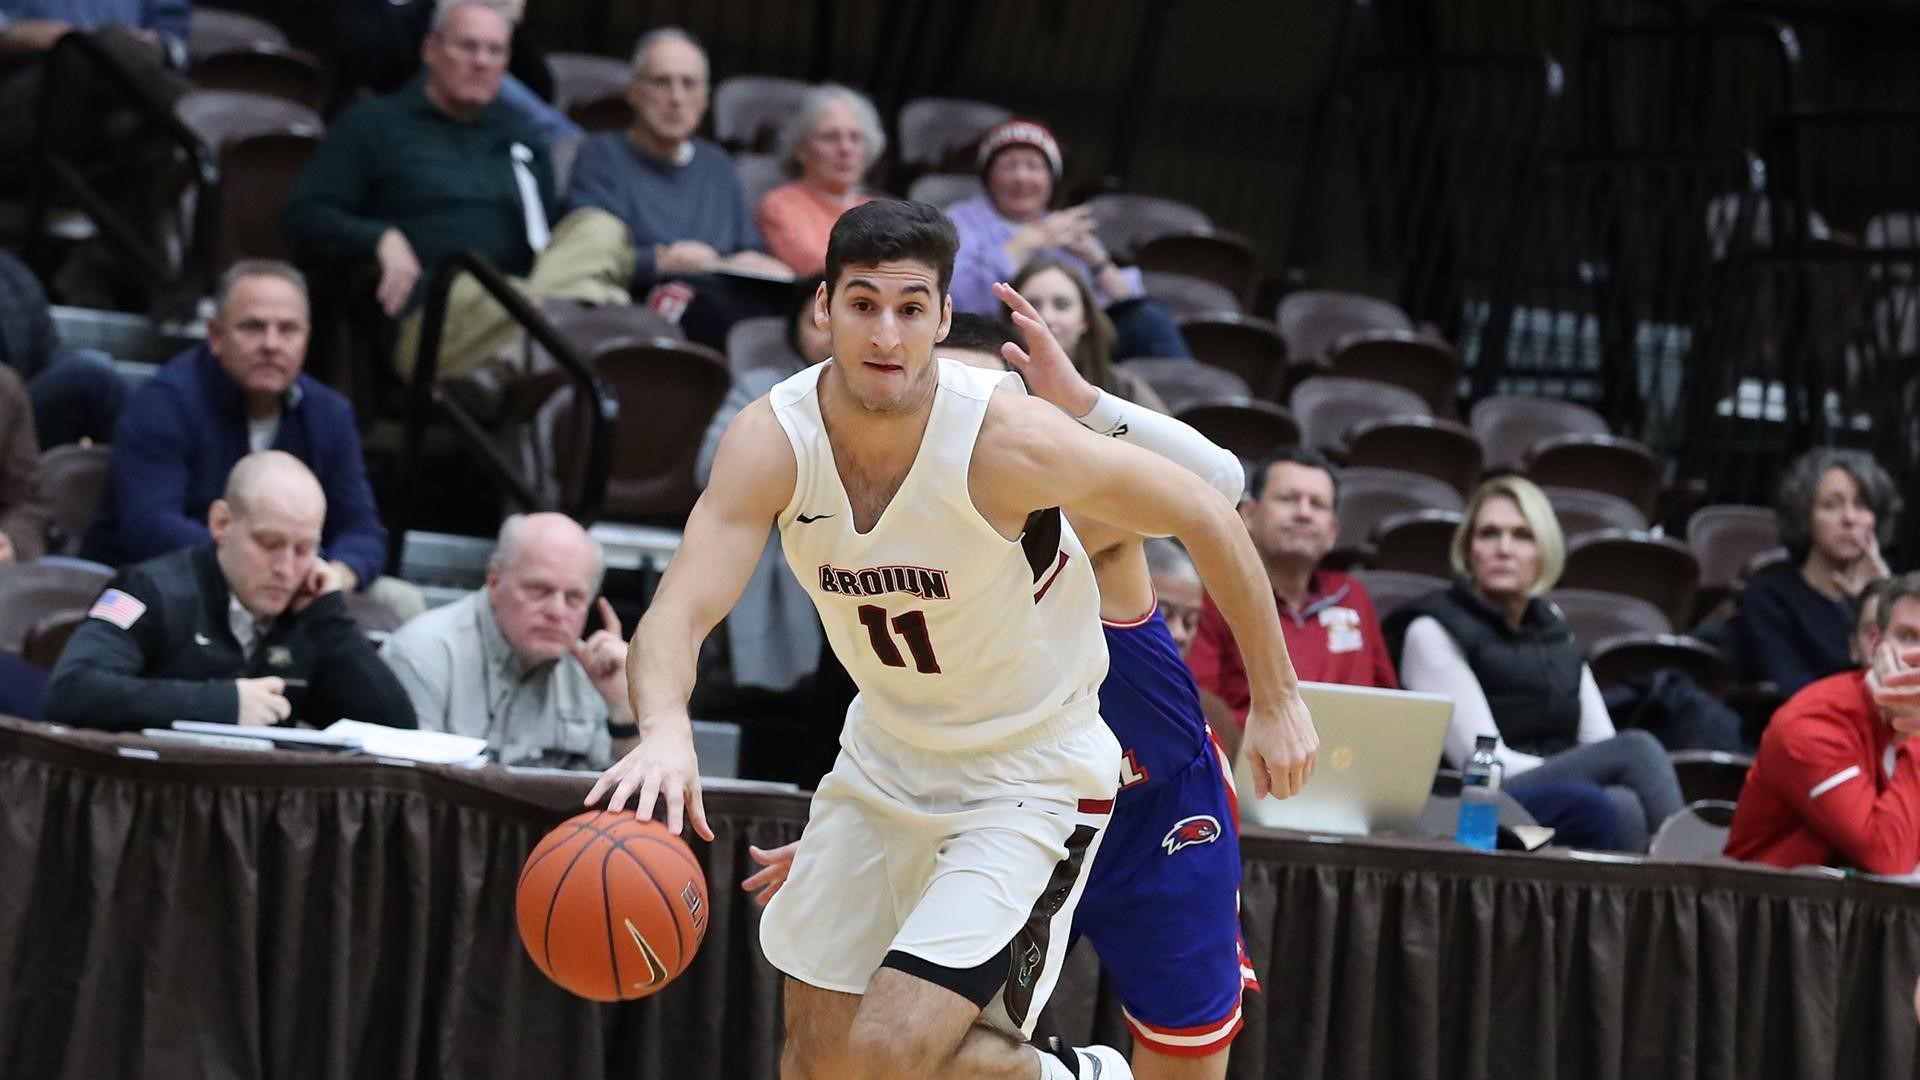 men's basketball takes on rhode island in ocean state match-up